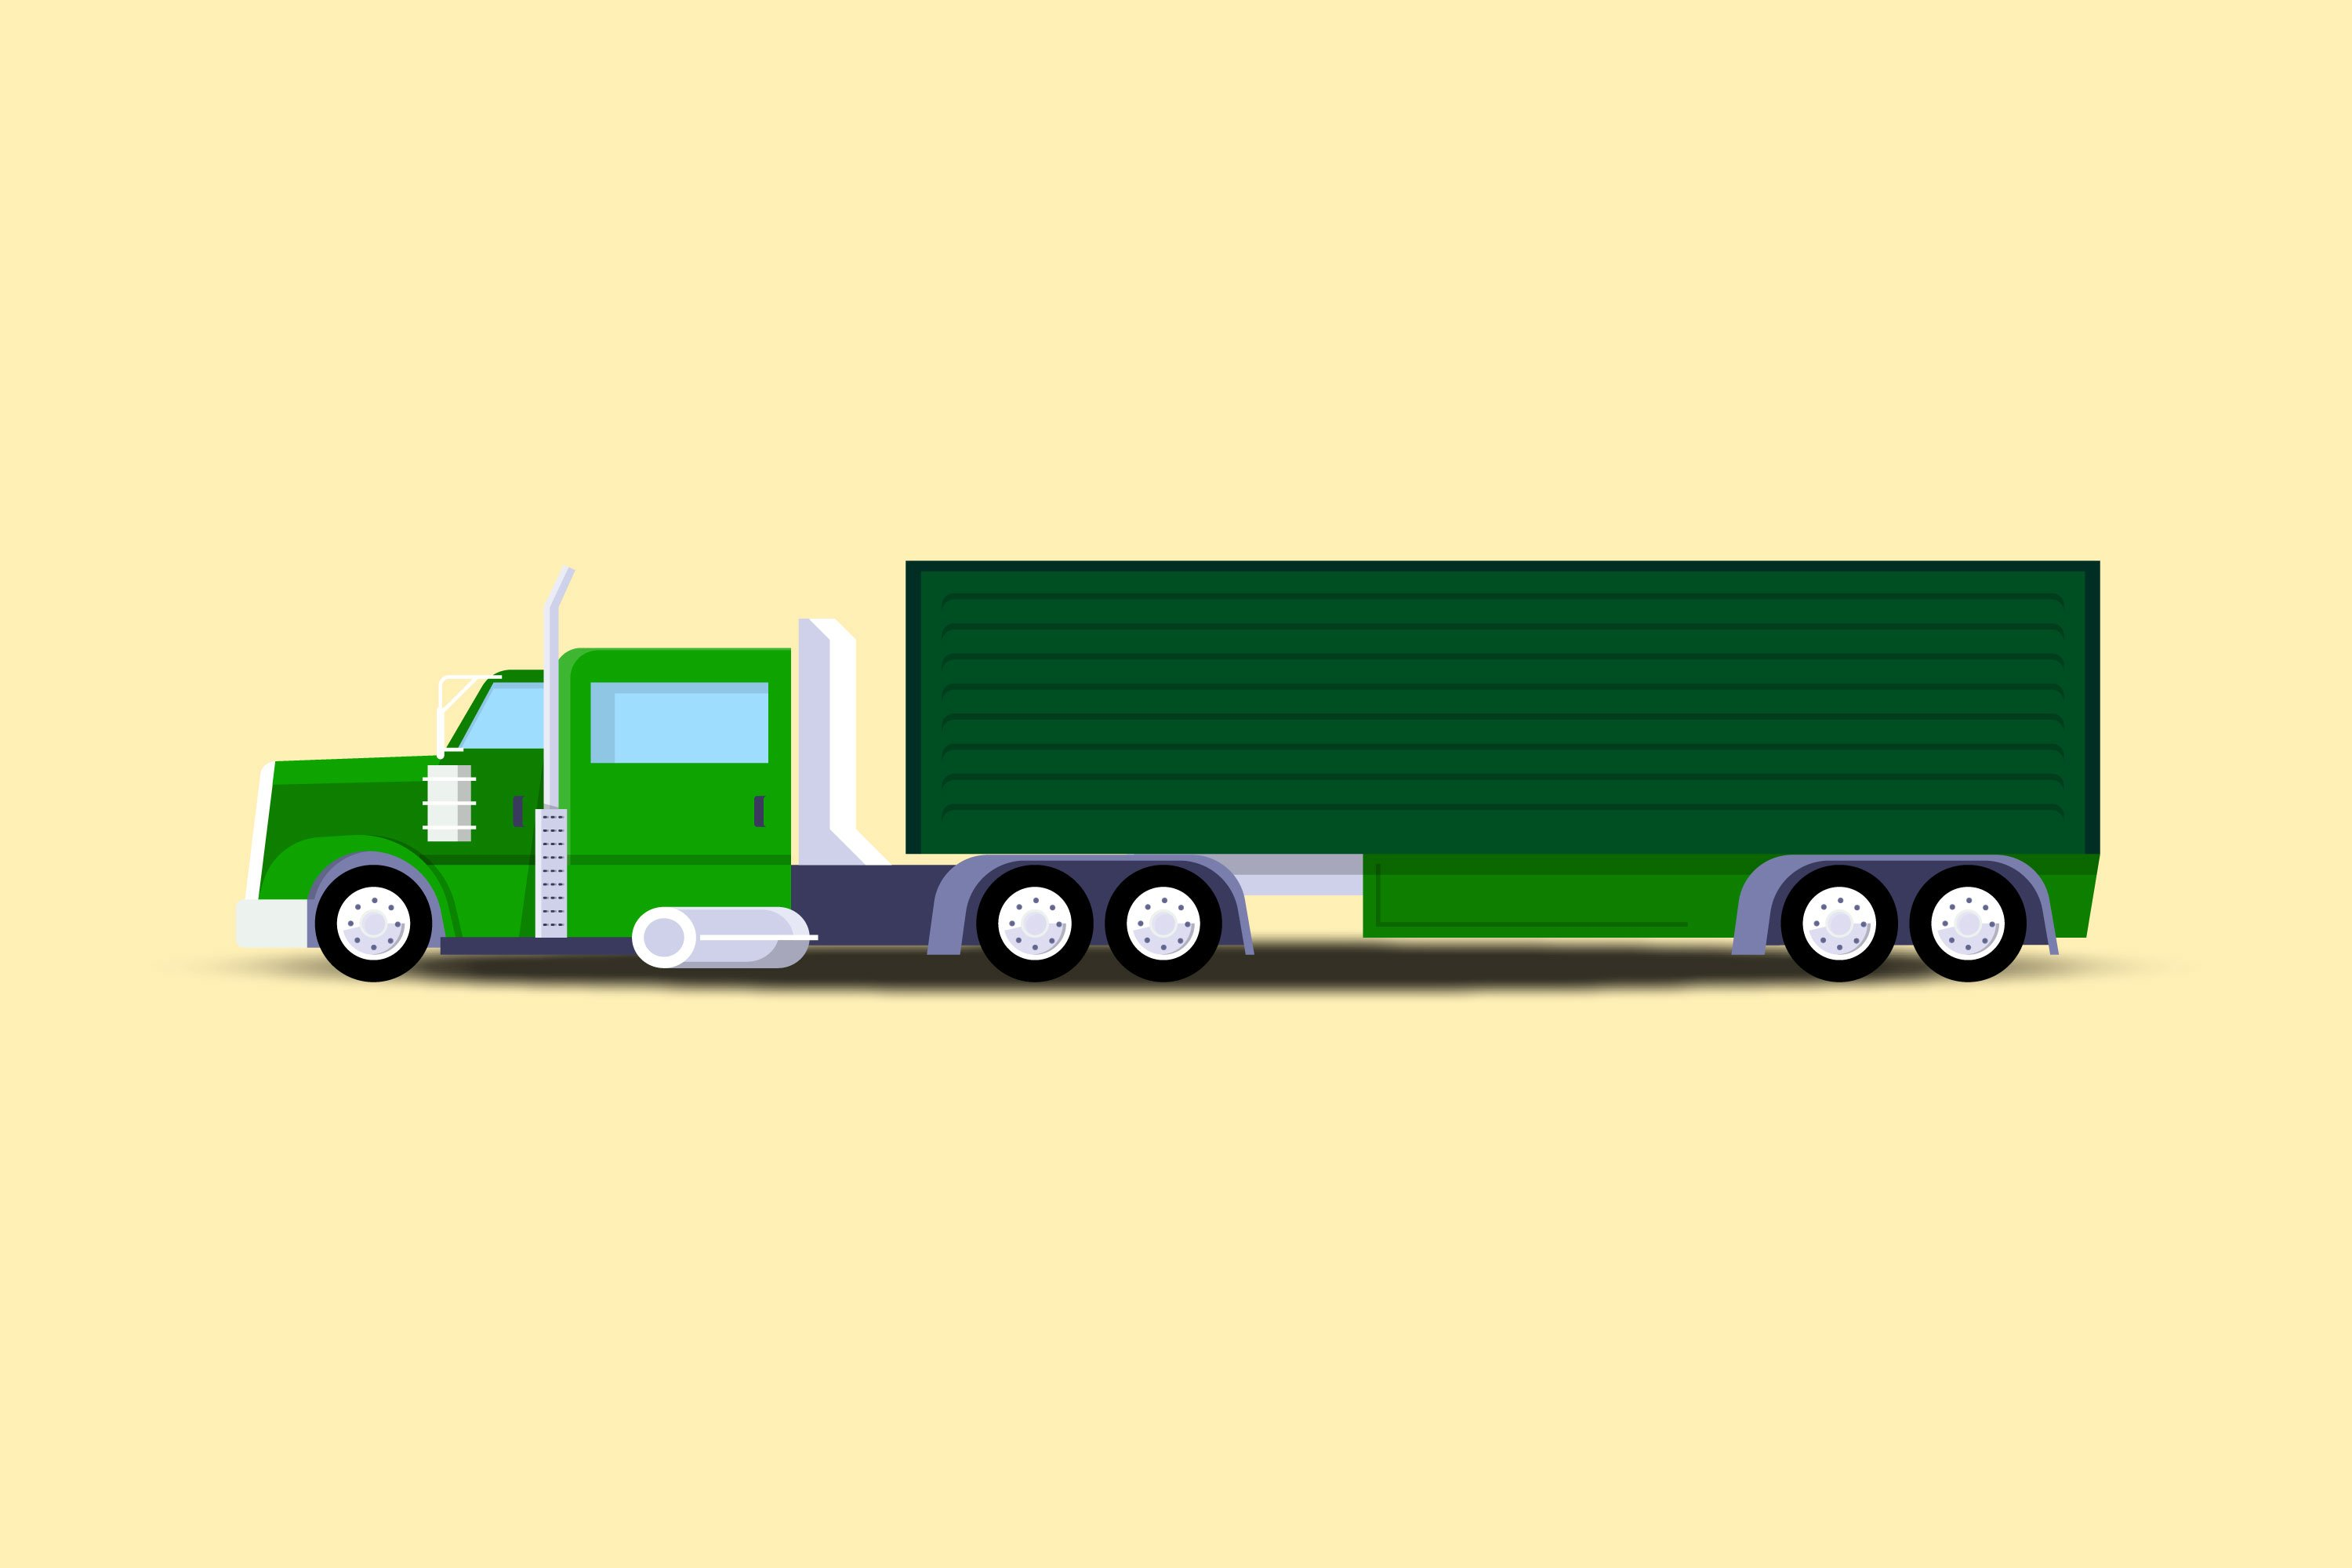 North American Truck Illustrations example image 1